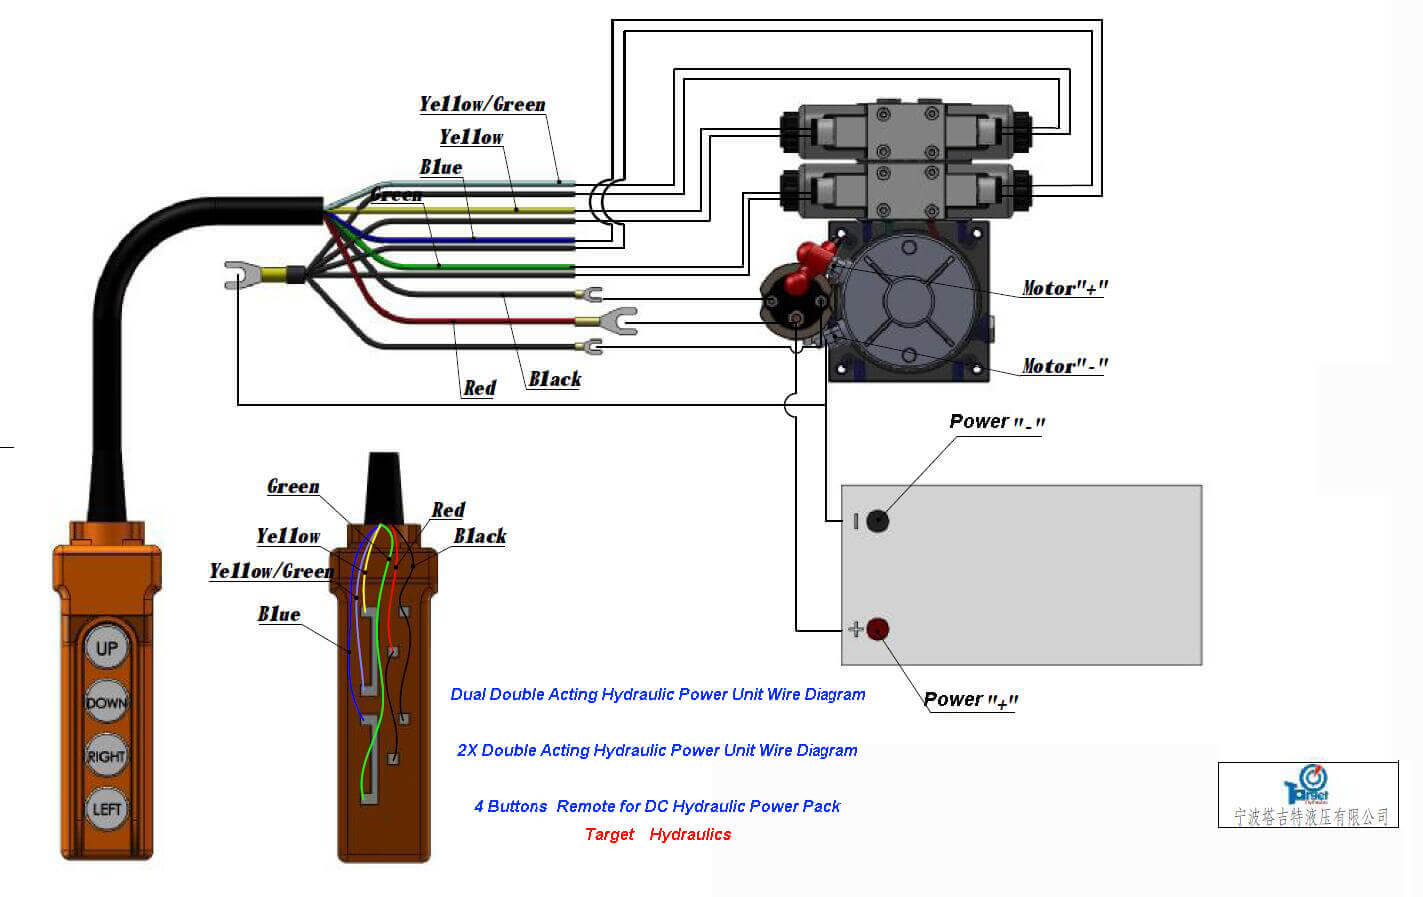 dual double acting hydraulic cylinder Power Units Wiring Diagram drawing how to wire hydraulic power pack,power unit diagram design dc wiring diagram at fashall.co